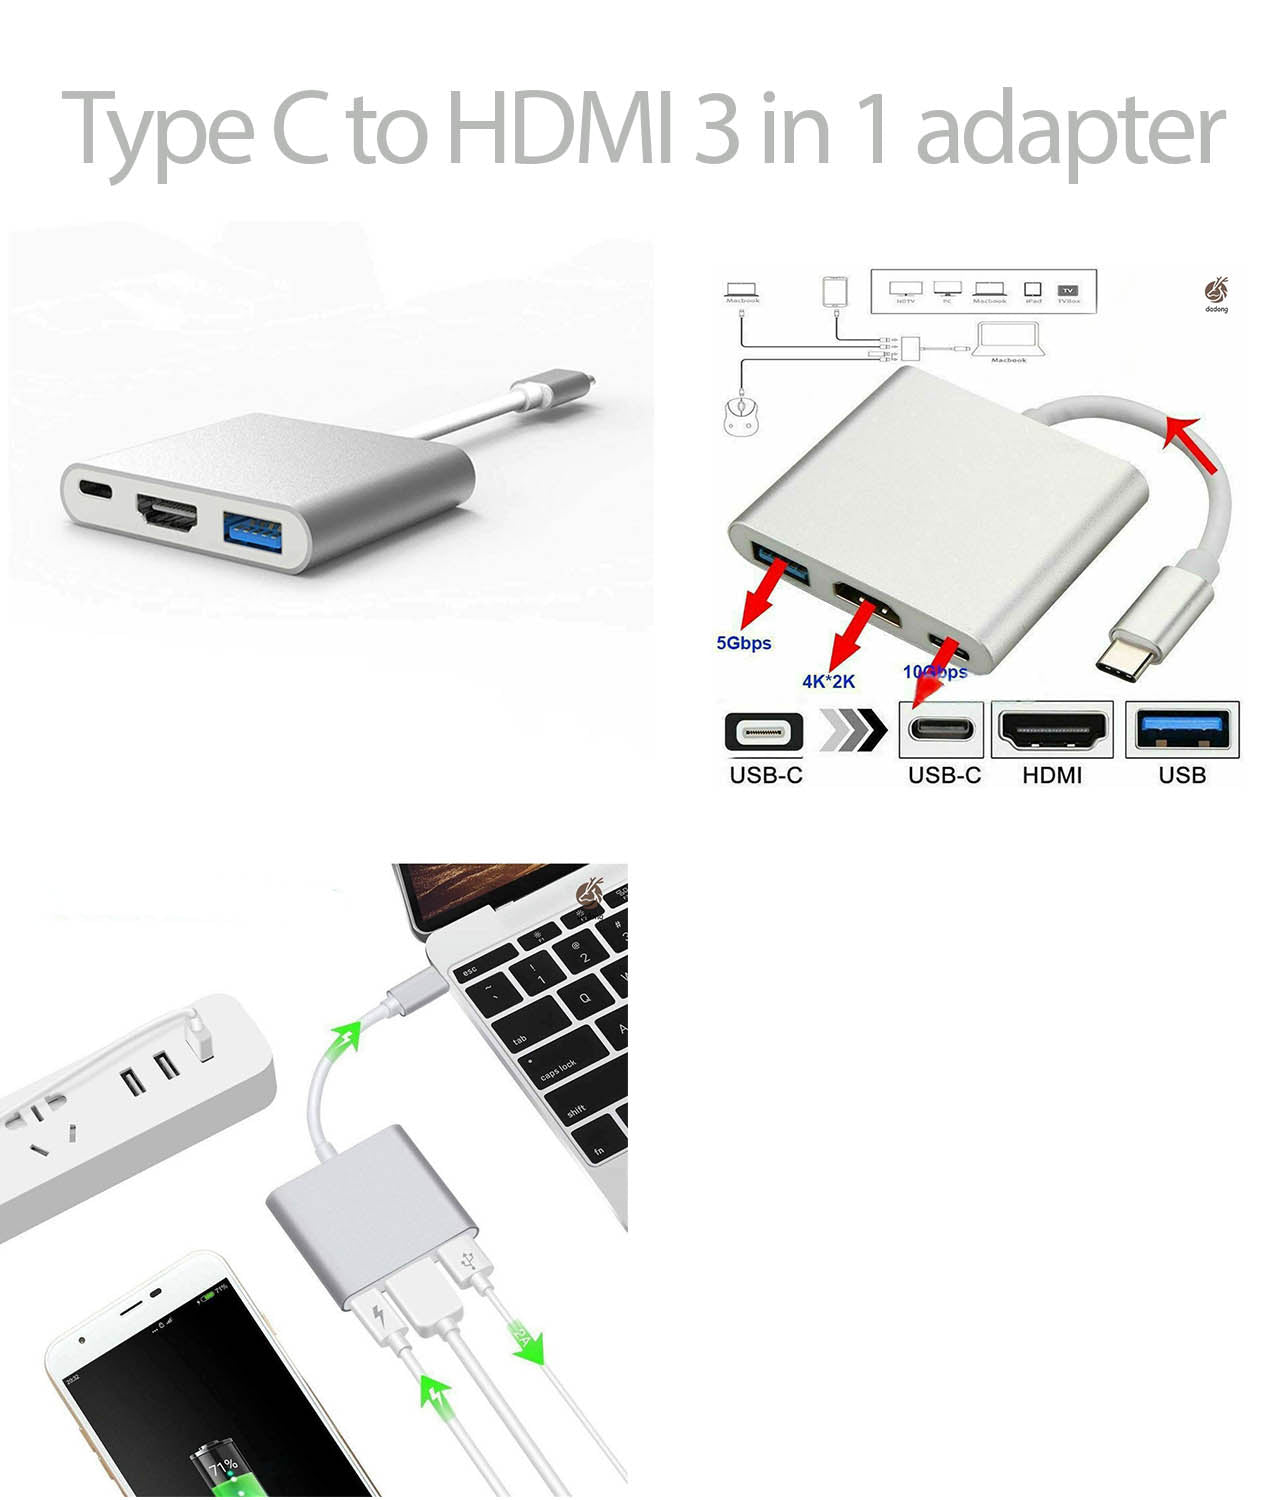 Type C to HDMI 3 in 1 Adapter